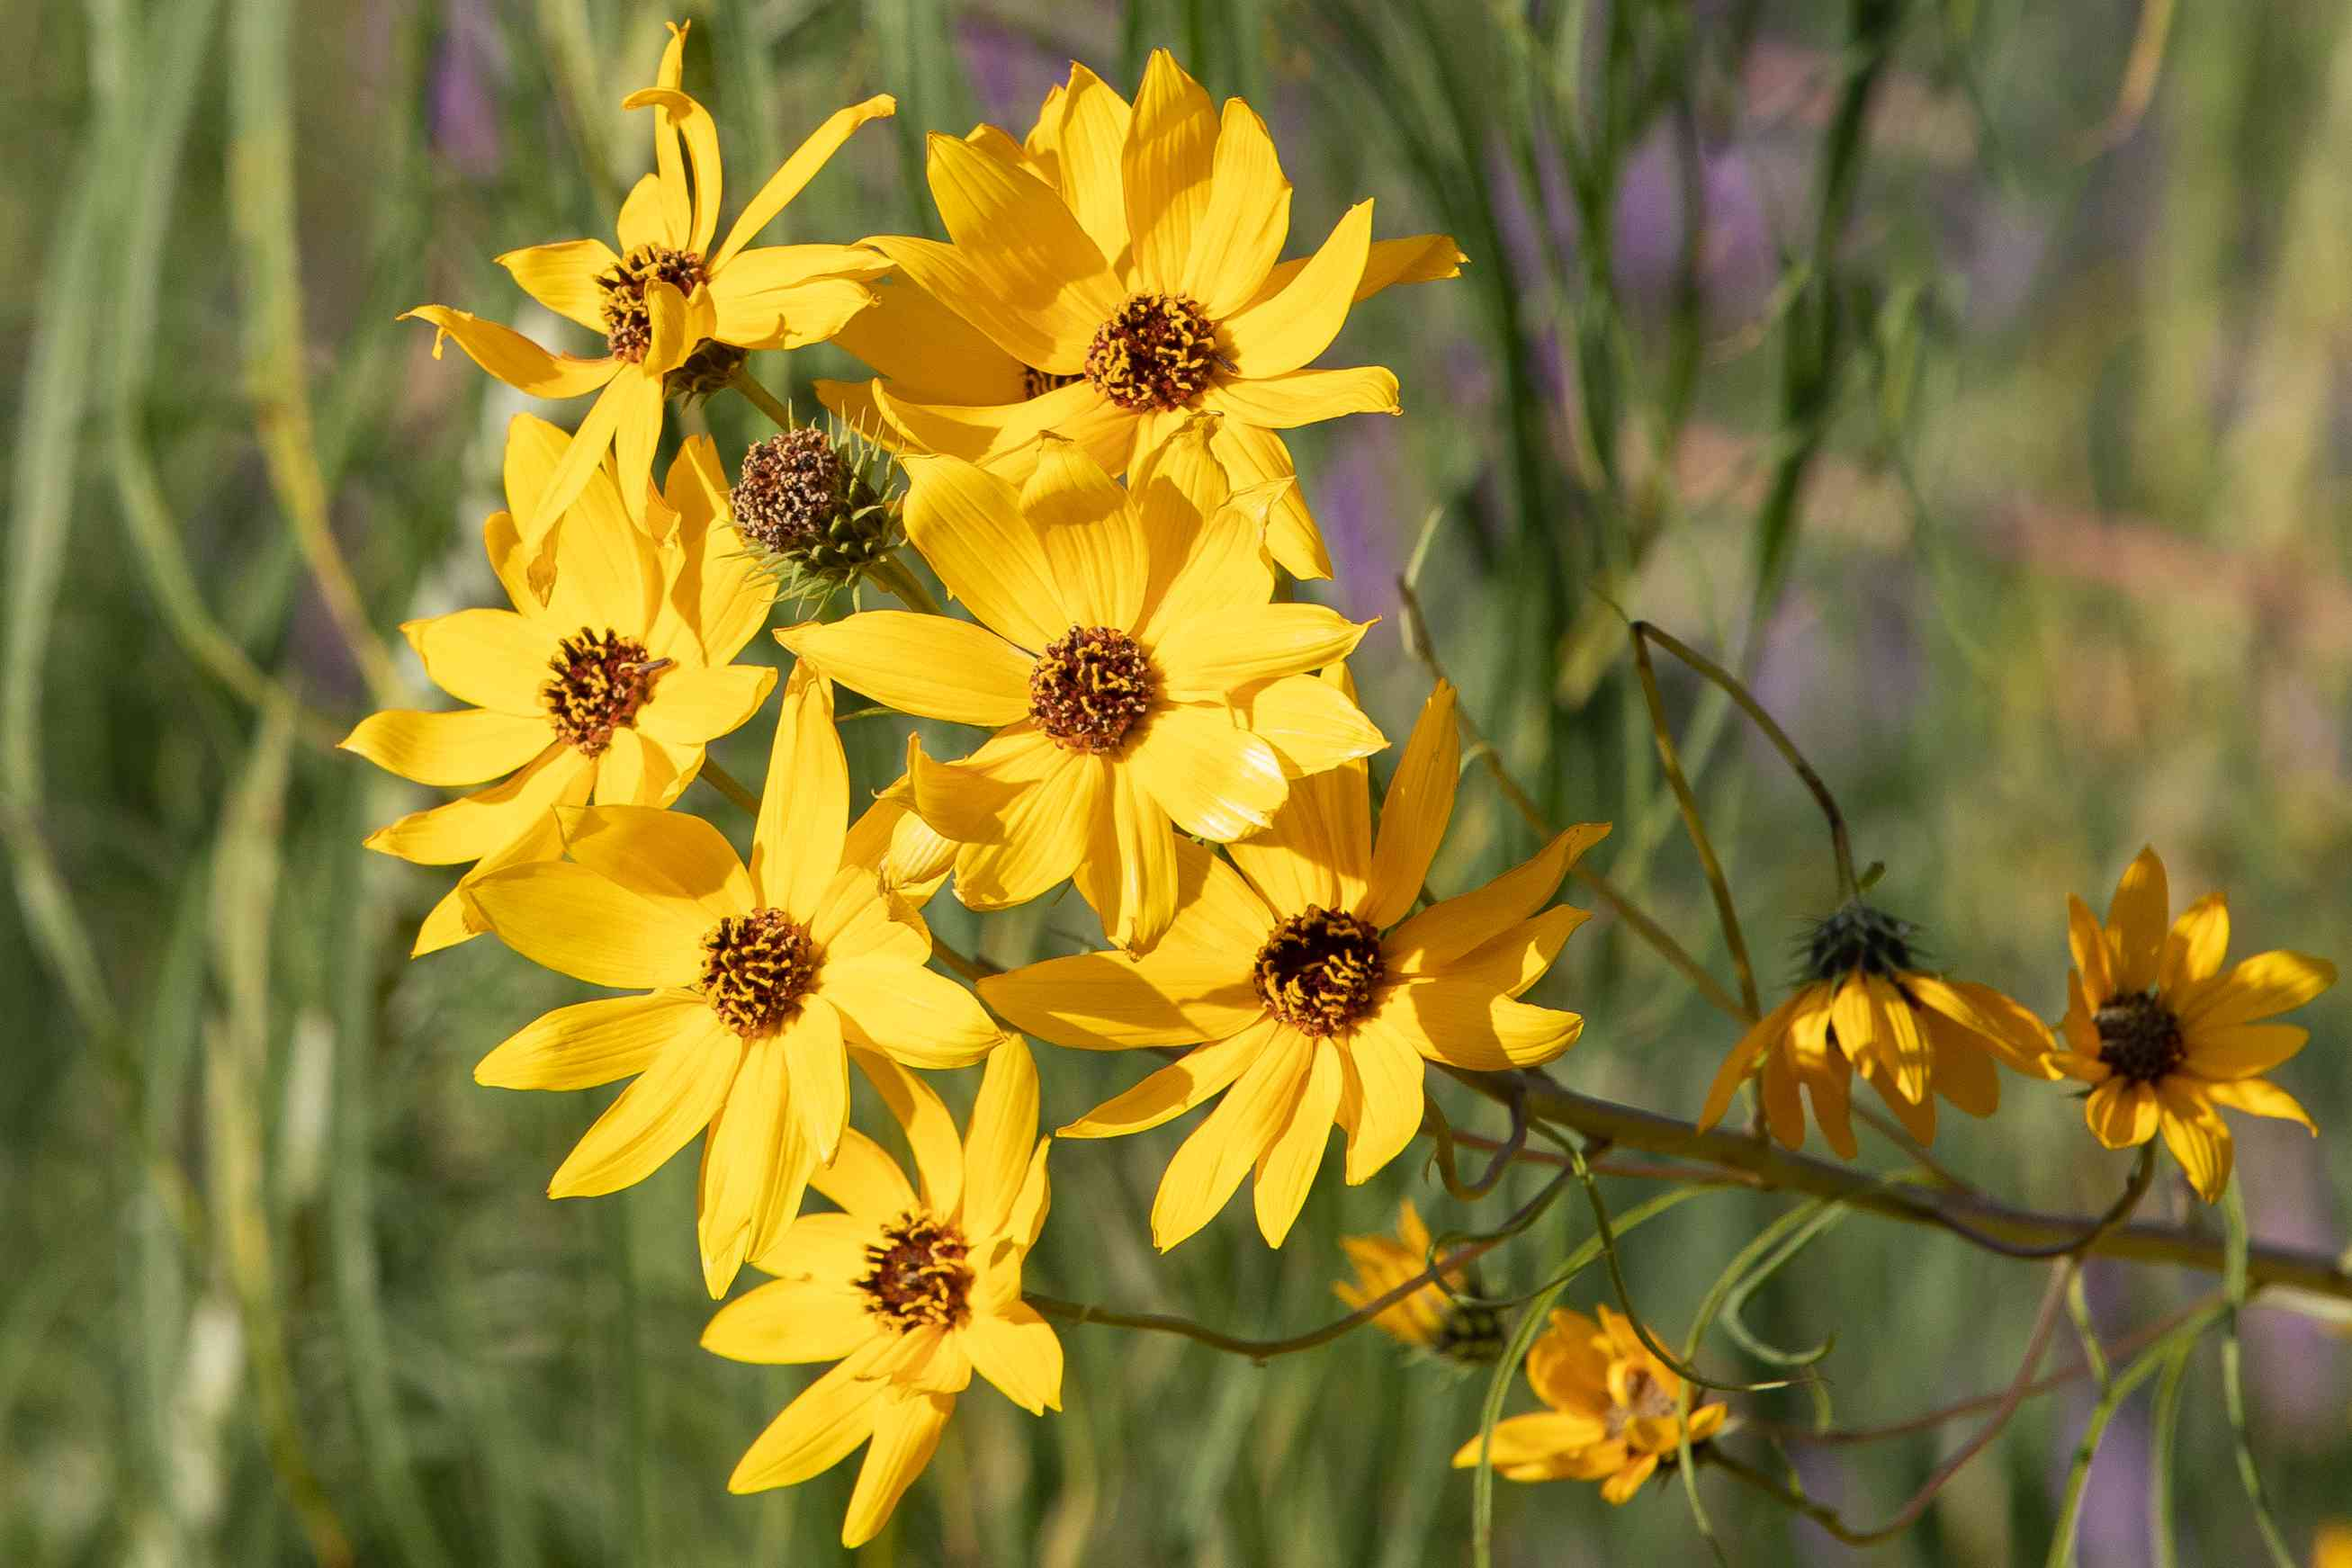 Coreopsis flowers with yellow petals clustered together off stem in sunlight